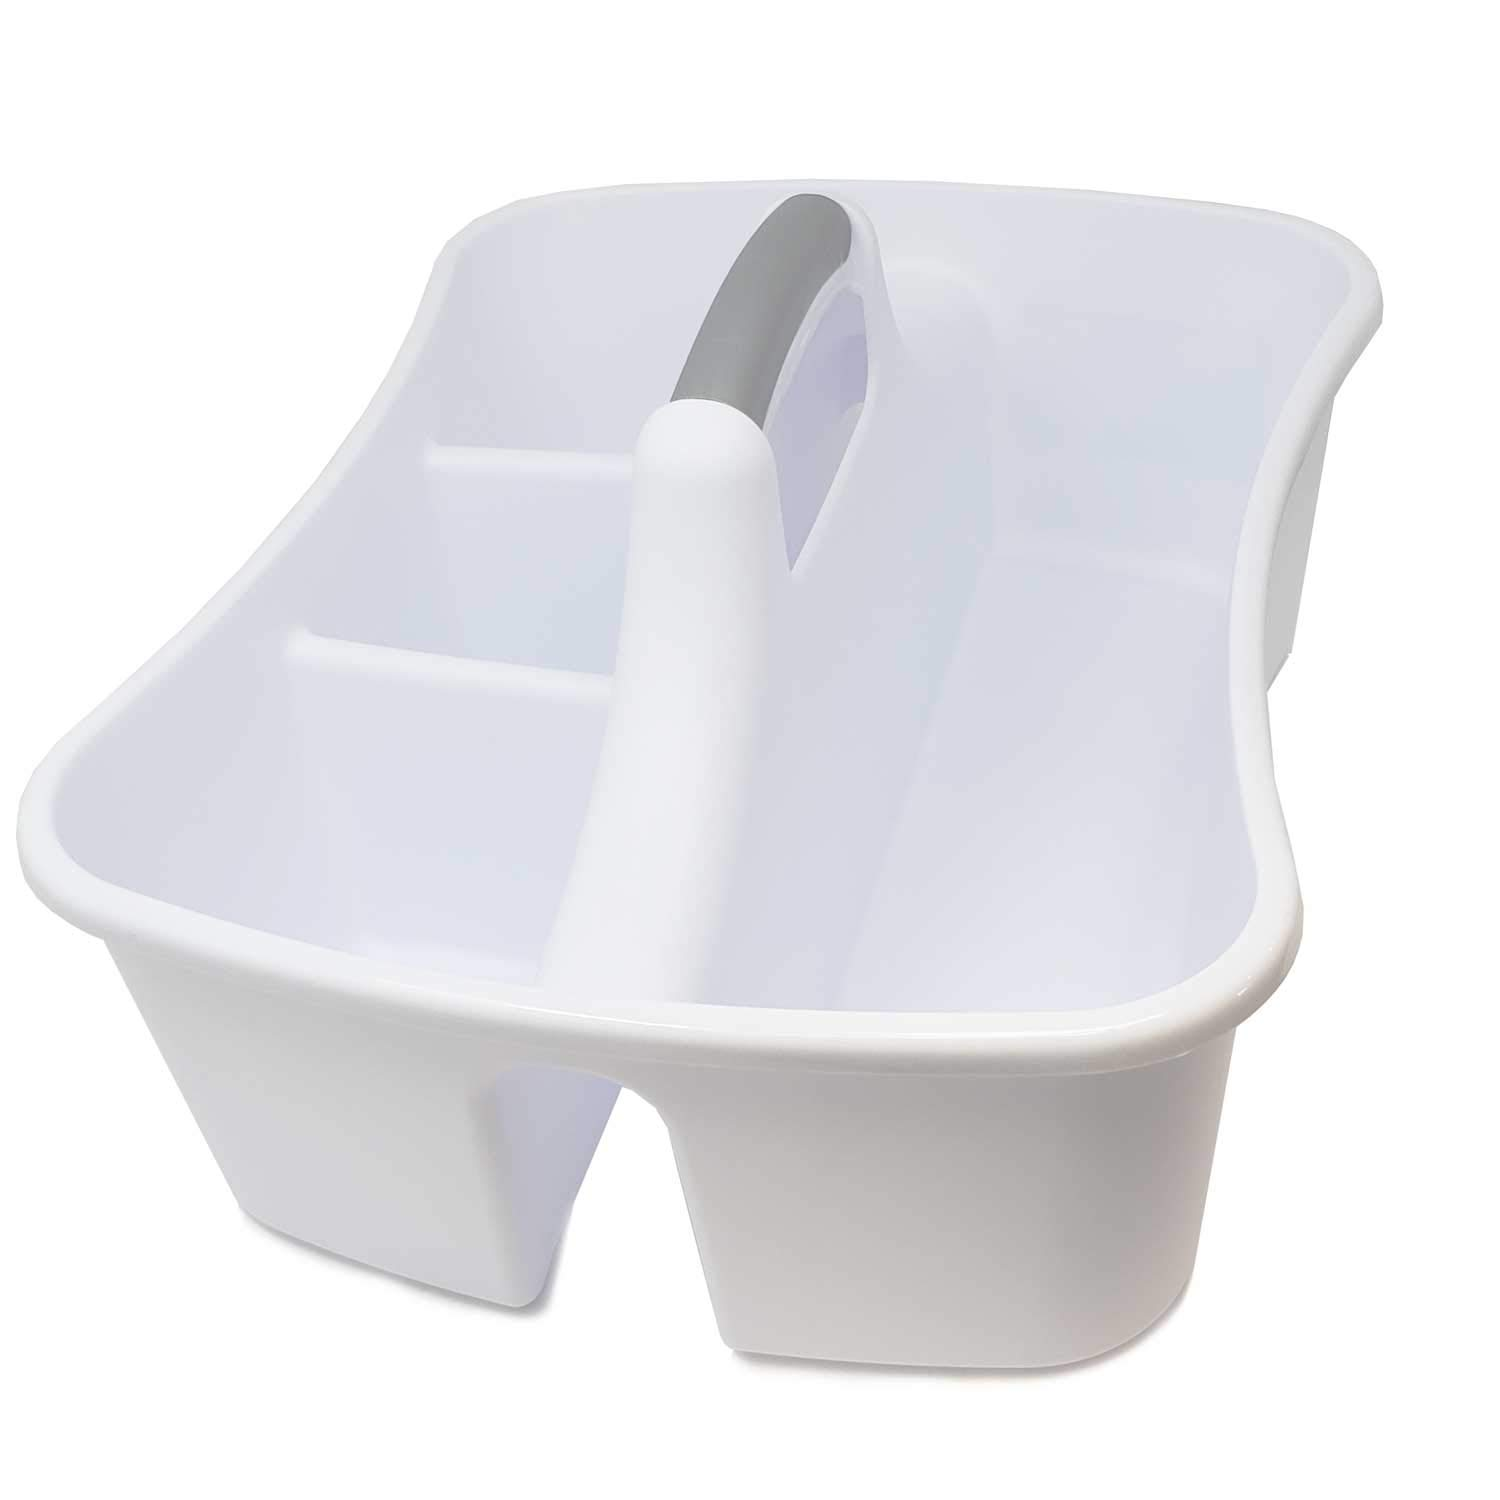 Bath Kitchen Divided Compartment Caddy Storage Sink Organizer Janitors Bucket Soap Cleaning Brush Sponge Bottle Holder Shower Basket Supplies Cabinet Container - 17 3/4'' L x 13 1/4'' W x 8 by LavoHome (Image #2)